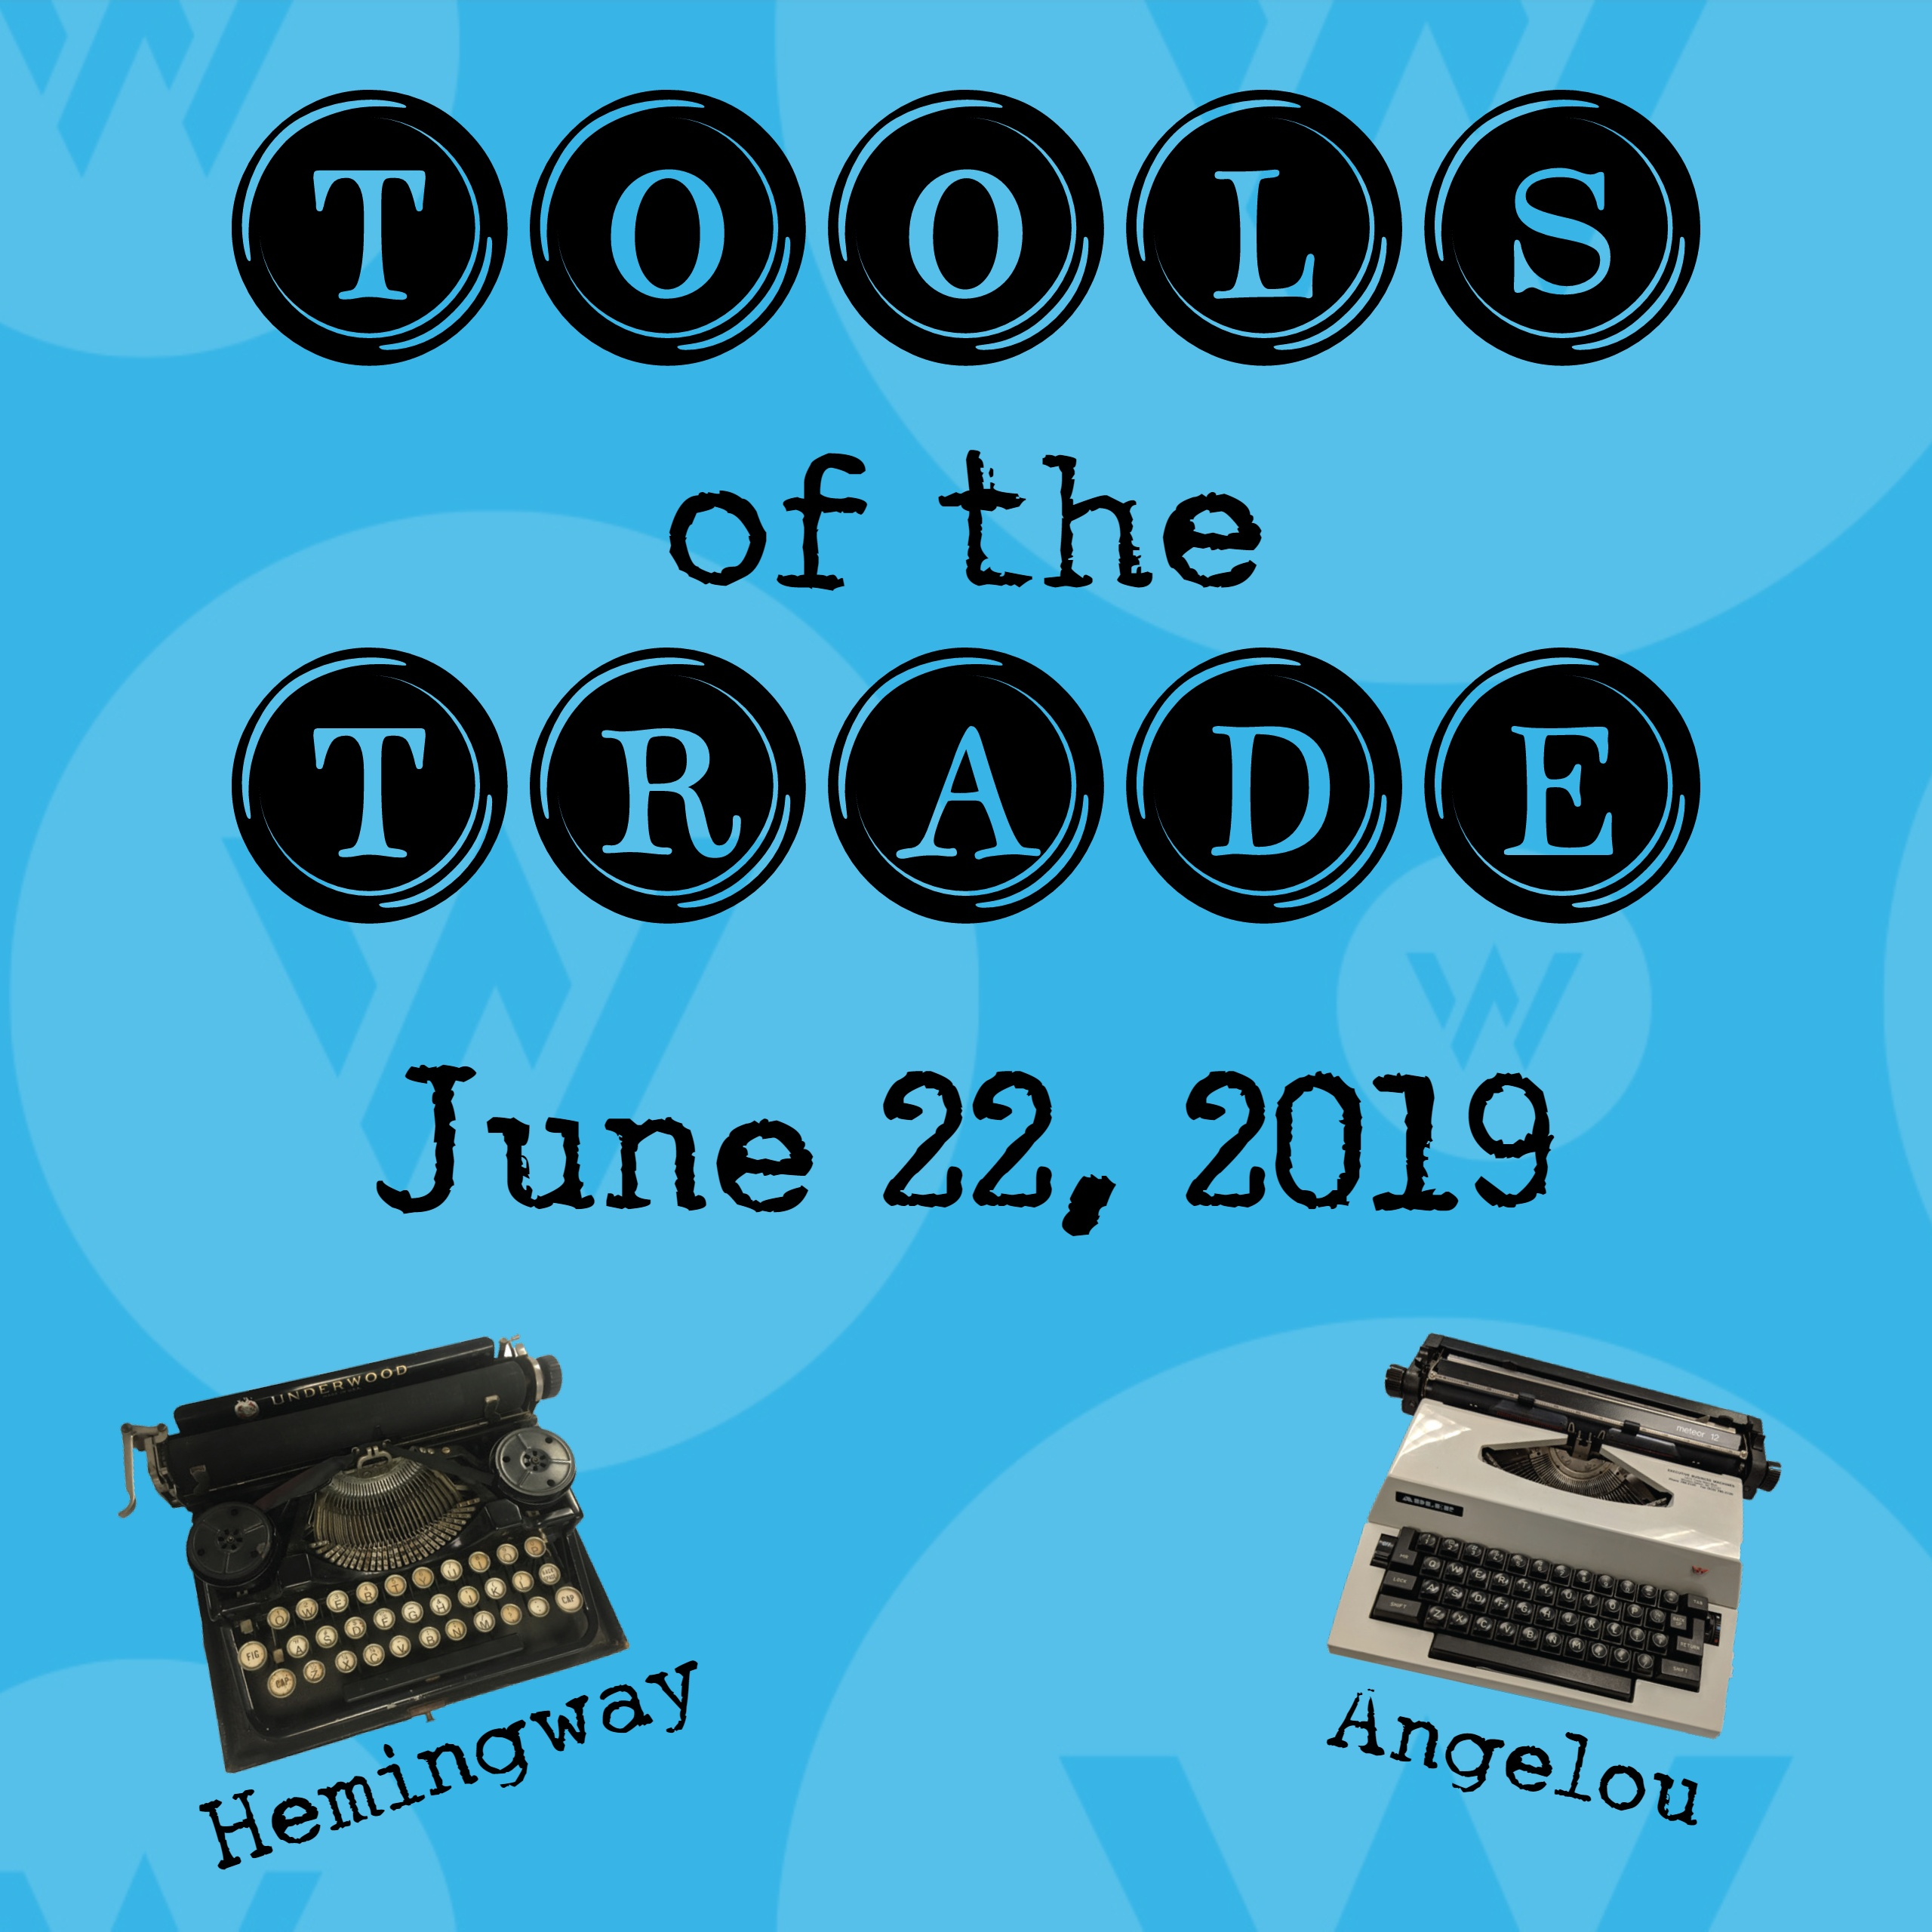 New exhibit Tools of the Trade opens June 22 at the American Writers Museum